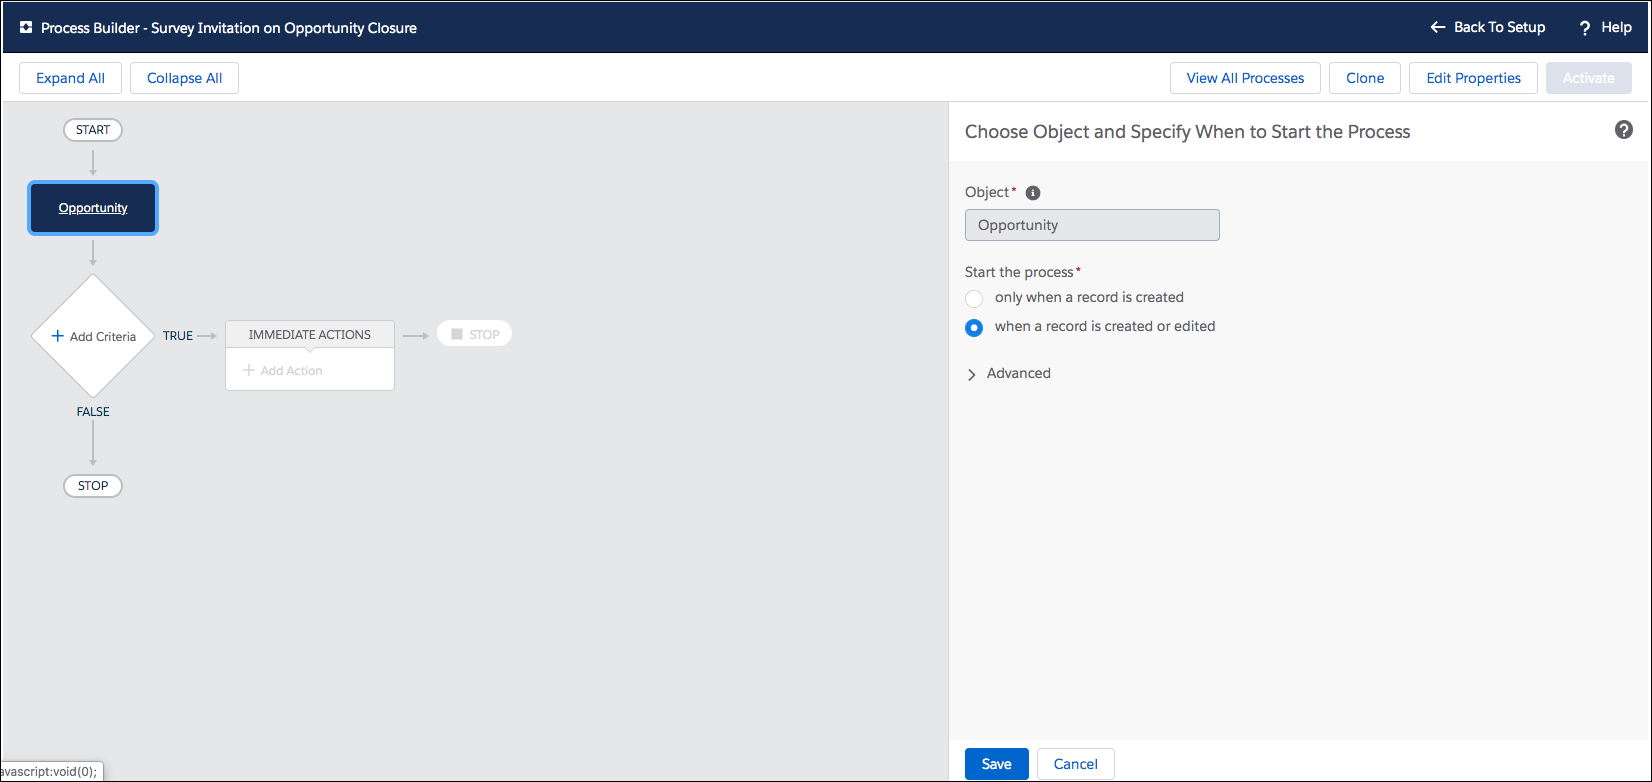 Process Builder with the Choose Object and Specify When to Start the Process step open.